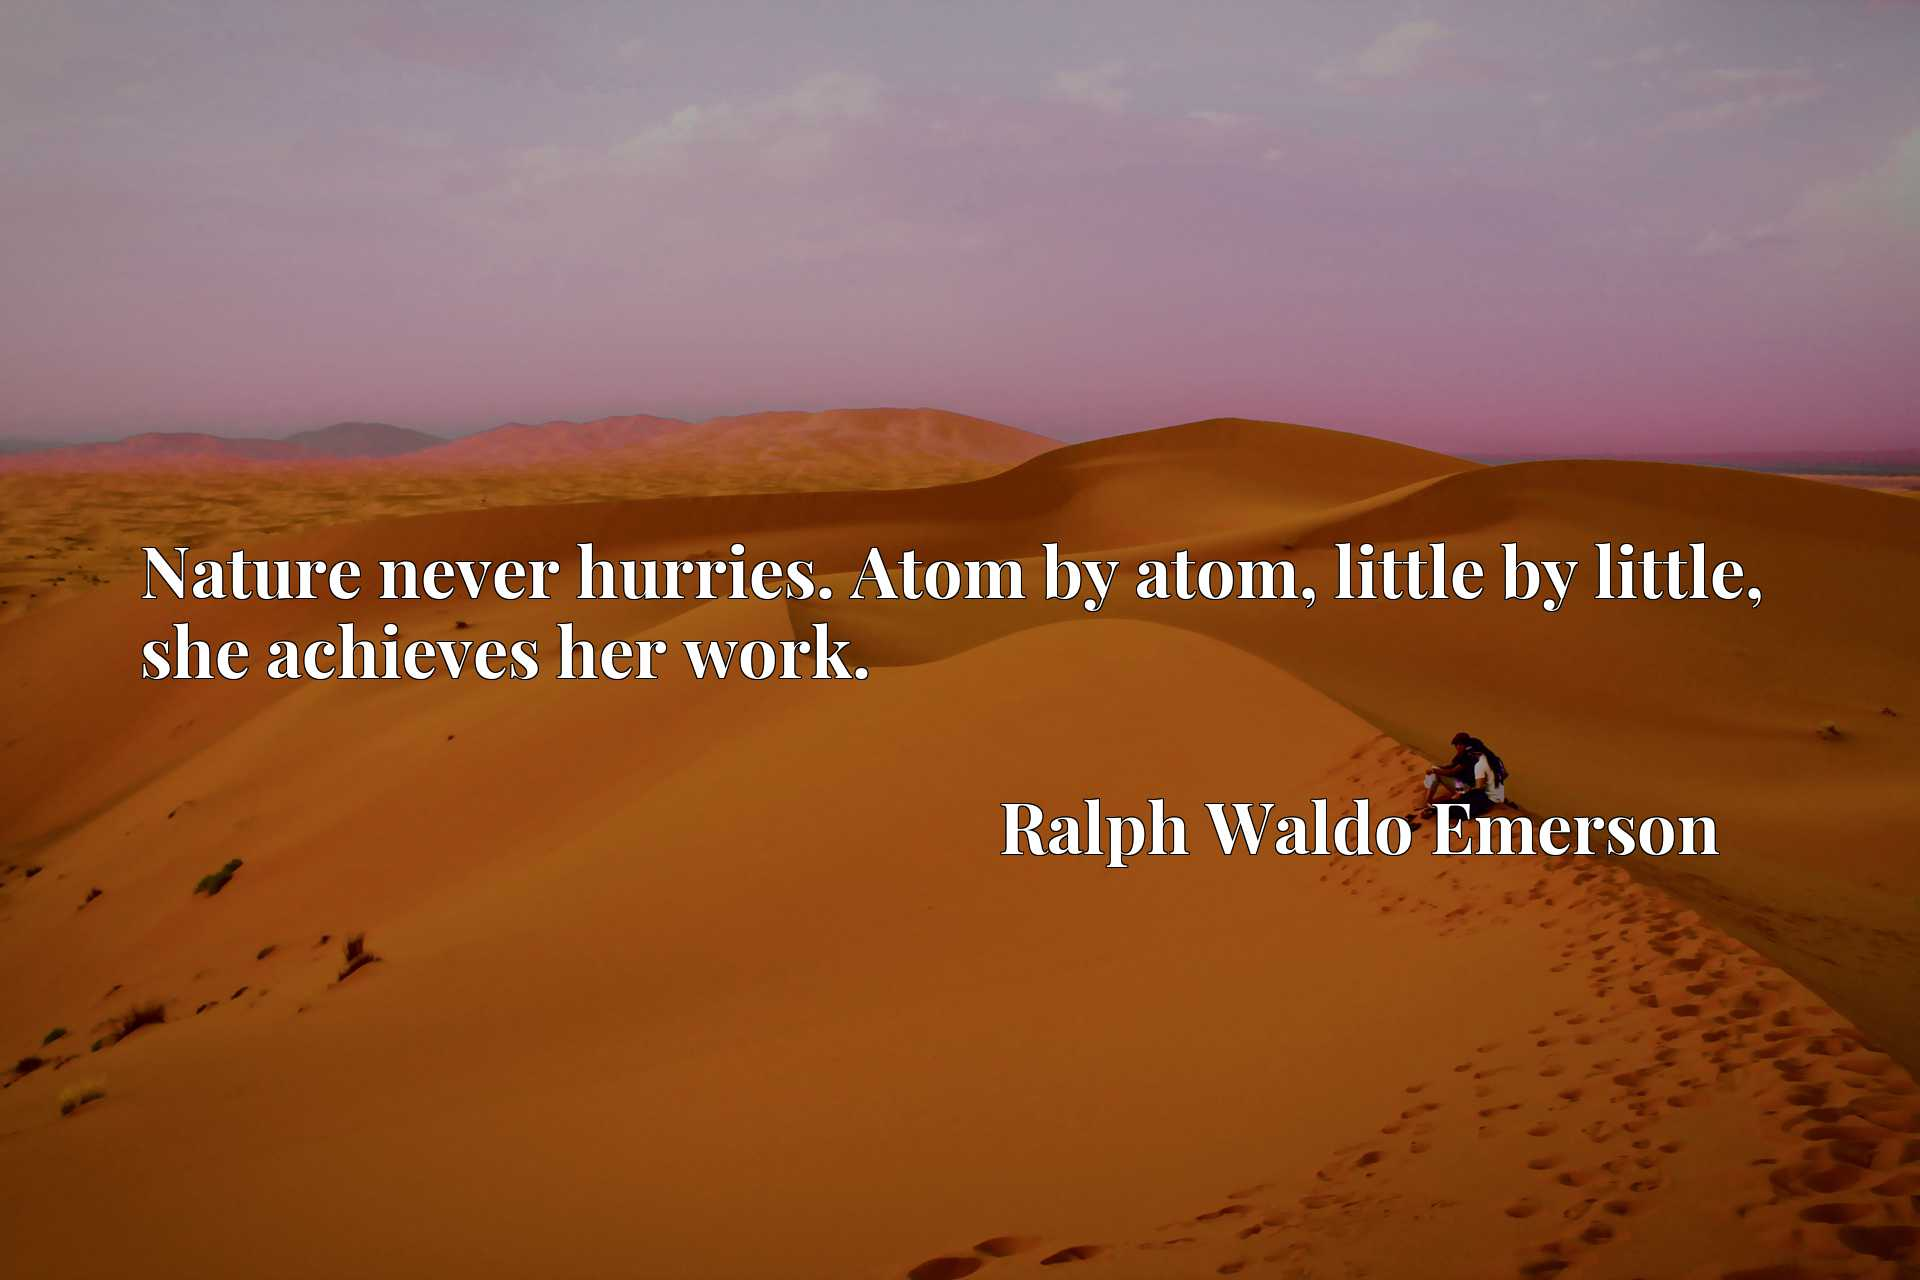 Nature never hurries. Atom by atom, little by little, she achieves her work.